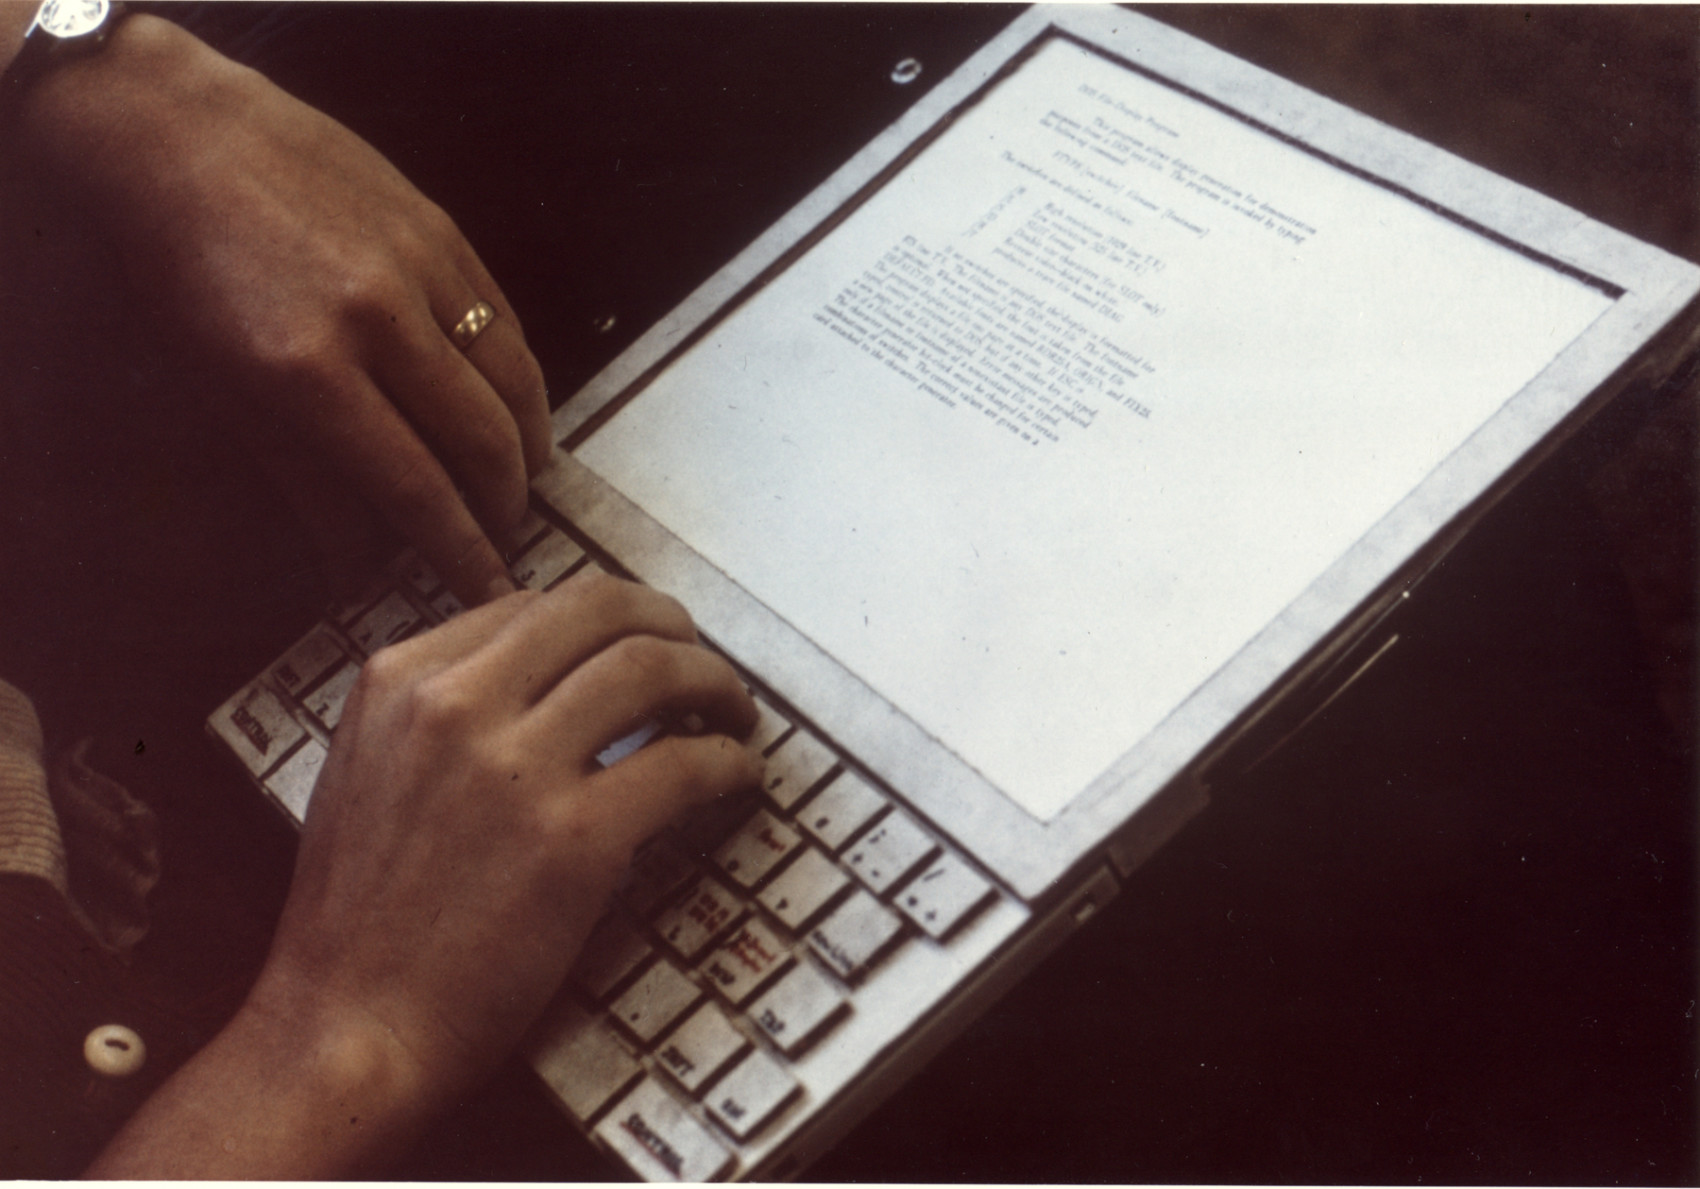 Fig. 14: Mockup of the Dynabook conceived by Xerox PARC's Alan Kay, 1970s. Source: https://www.parc.com/newsroom/media-library.html